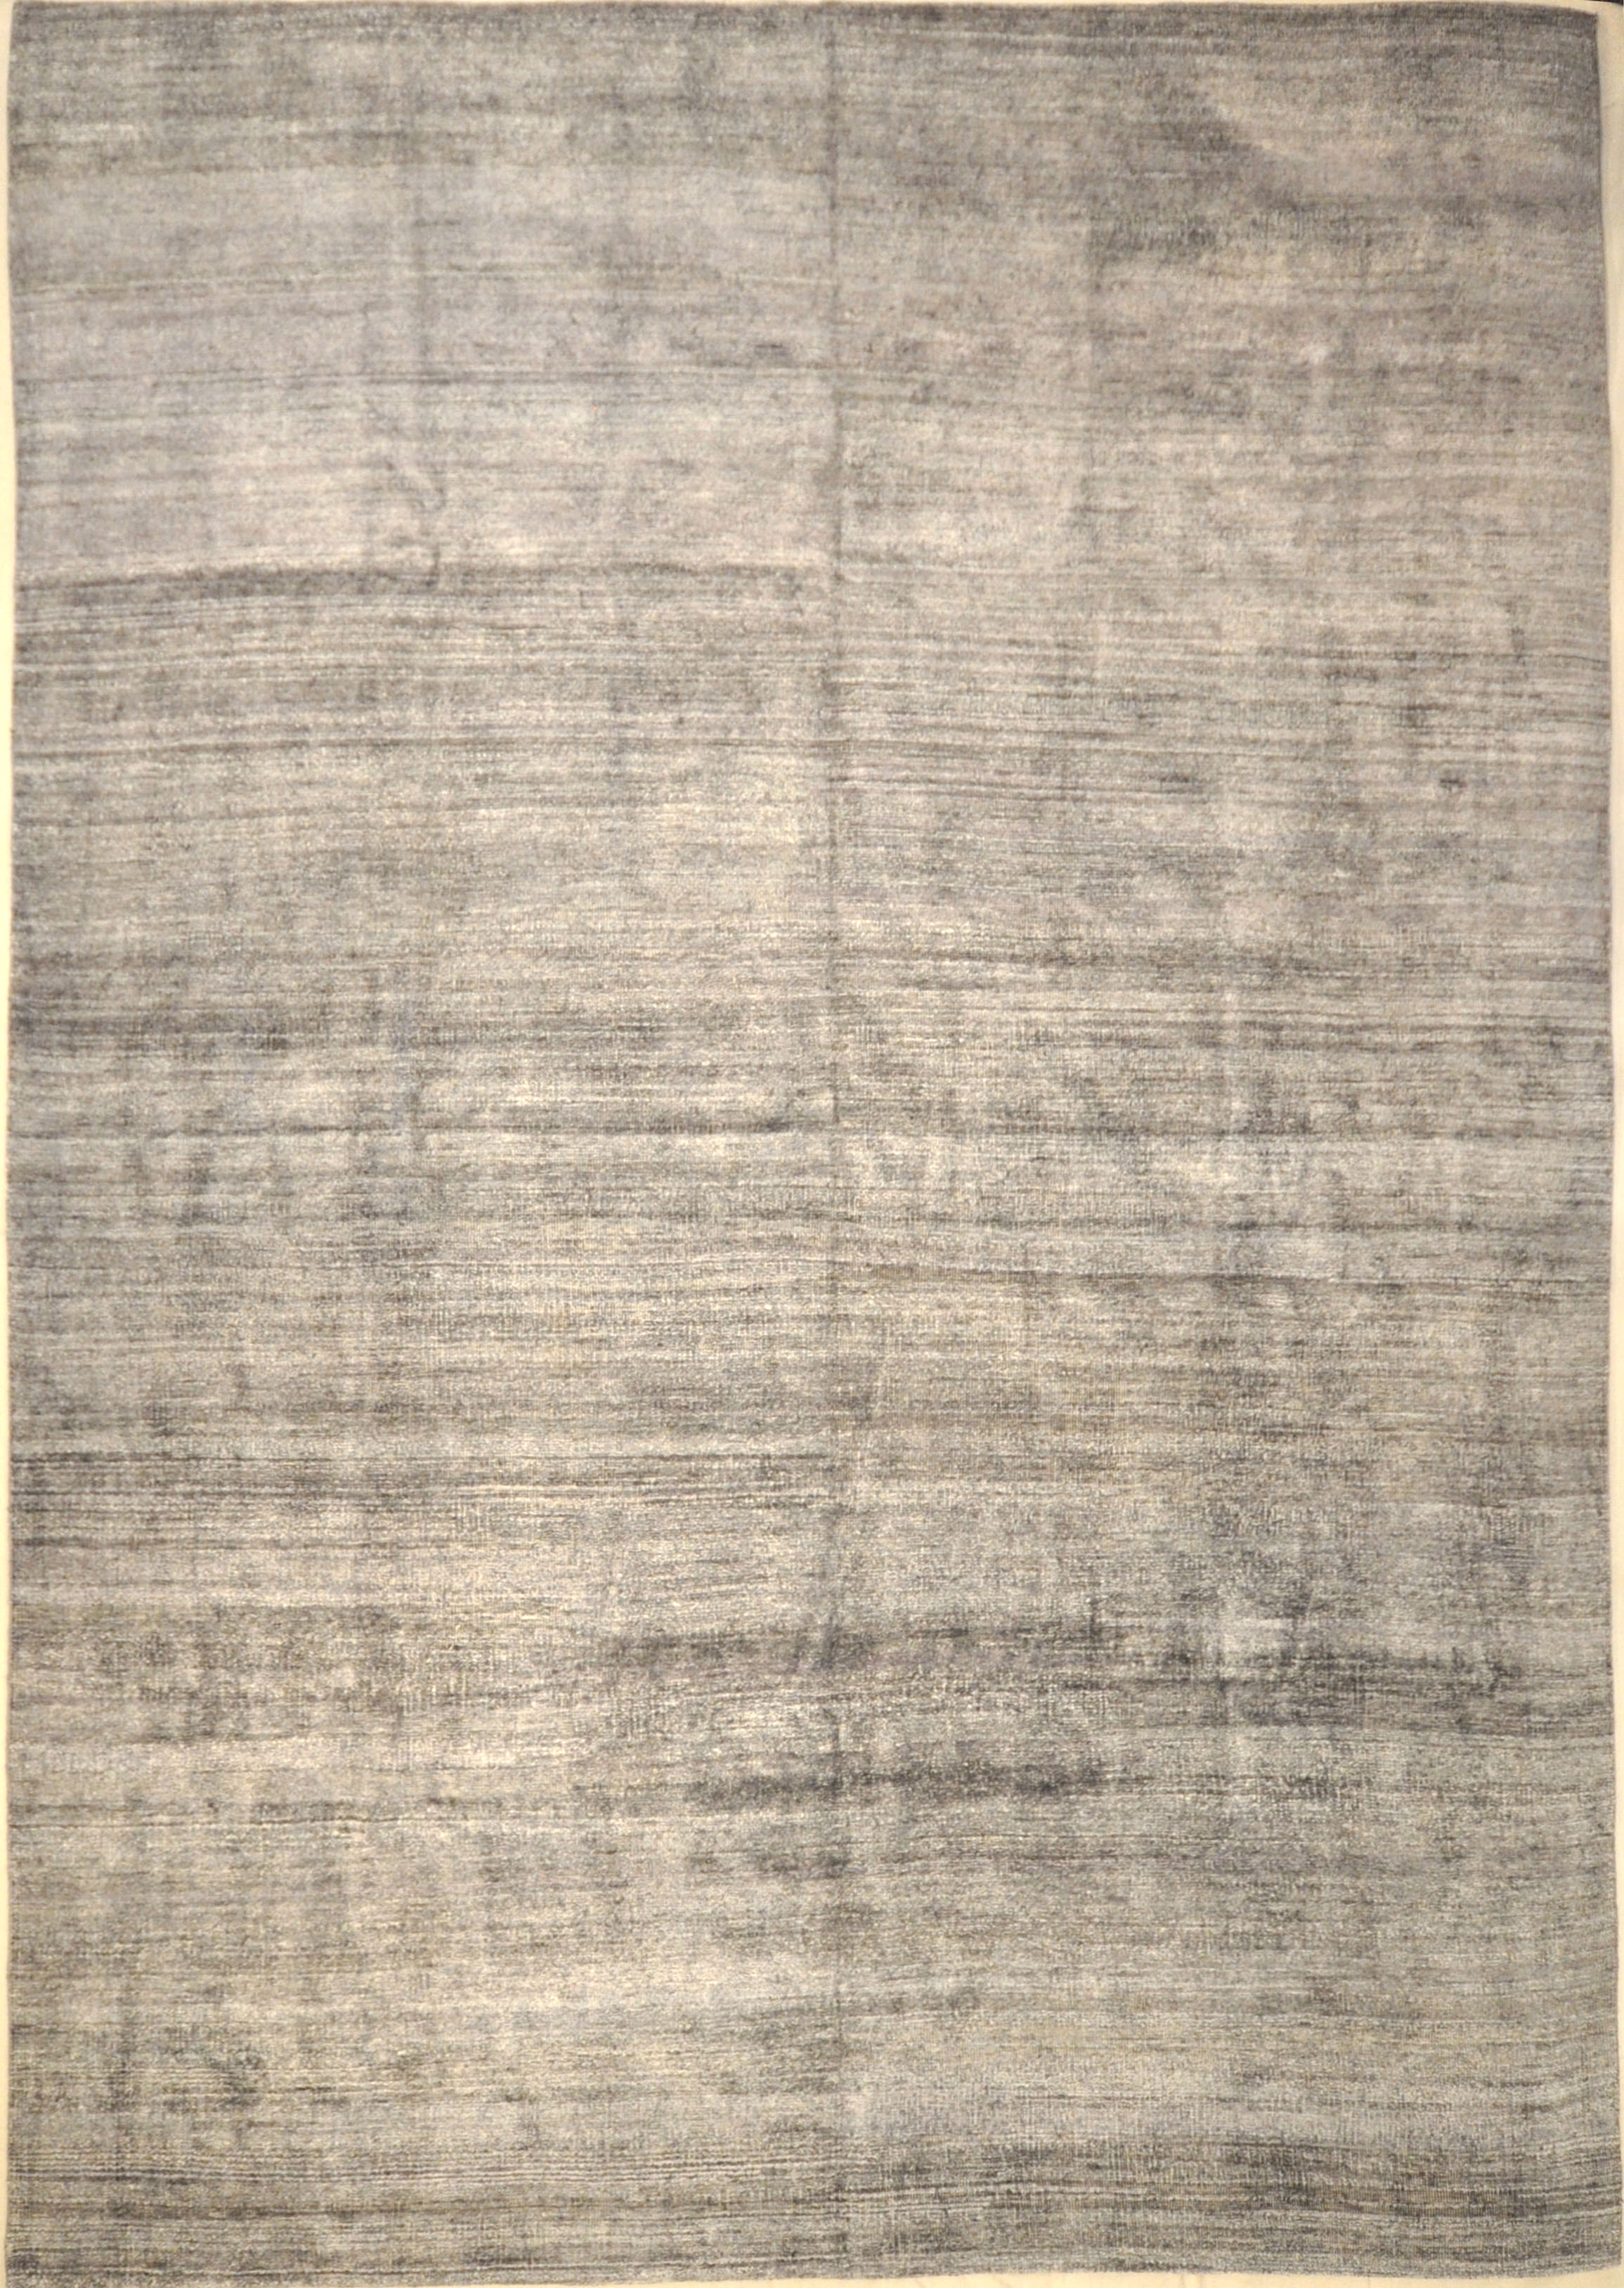 Montecito Oushak Rug 30302. A piece of genuine authentic woven art woven by Ziegler and Company and sold by Santa Barbara Design Center, Rugs and More.